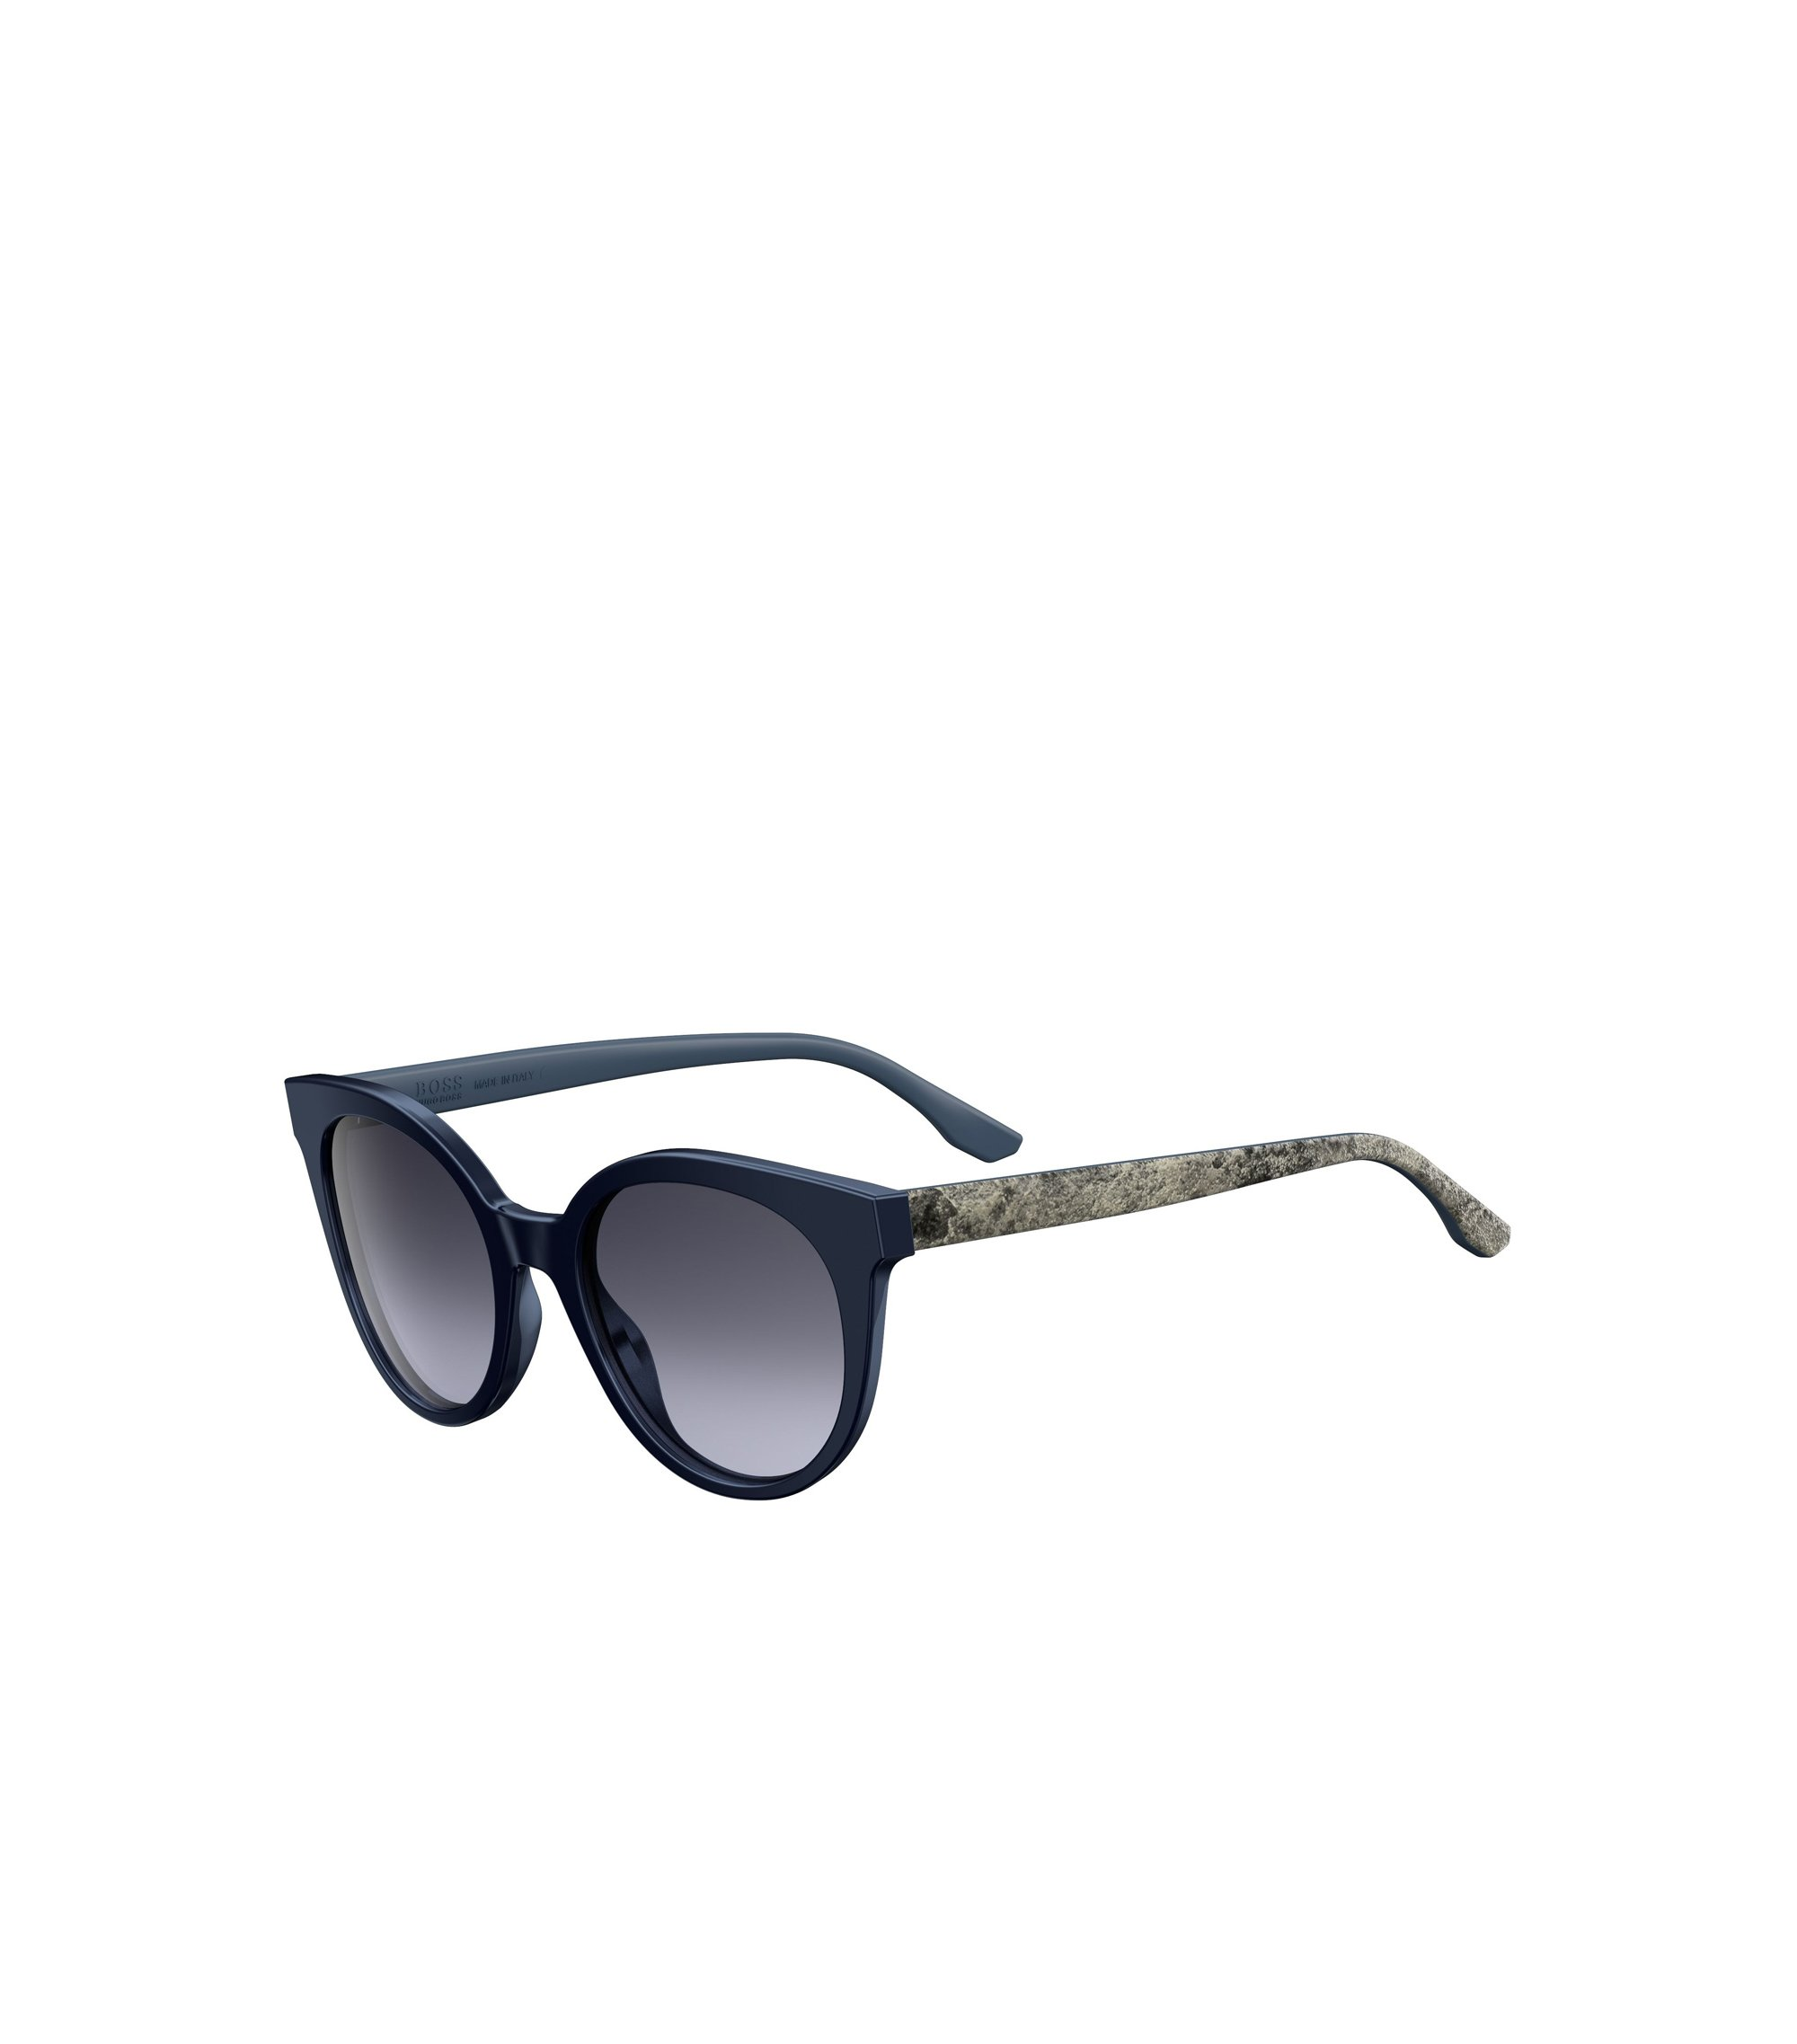 Tortoiseshell Acetate Round Sunglasses | BOSS 0890, Assorted-Pre-Pack